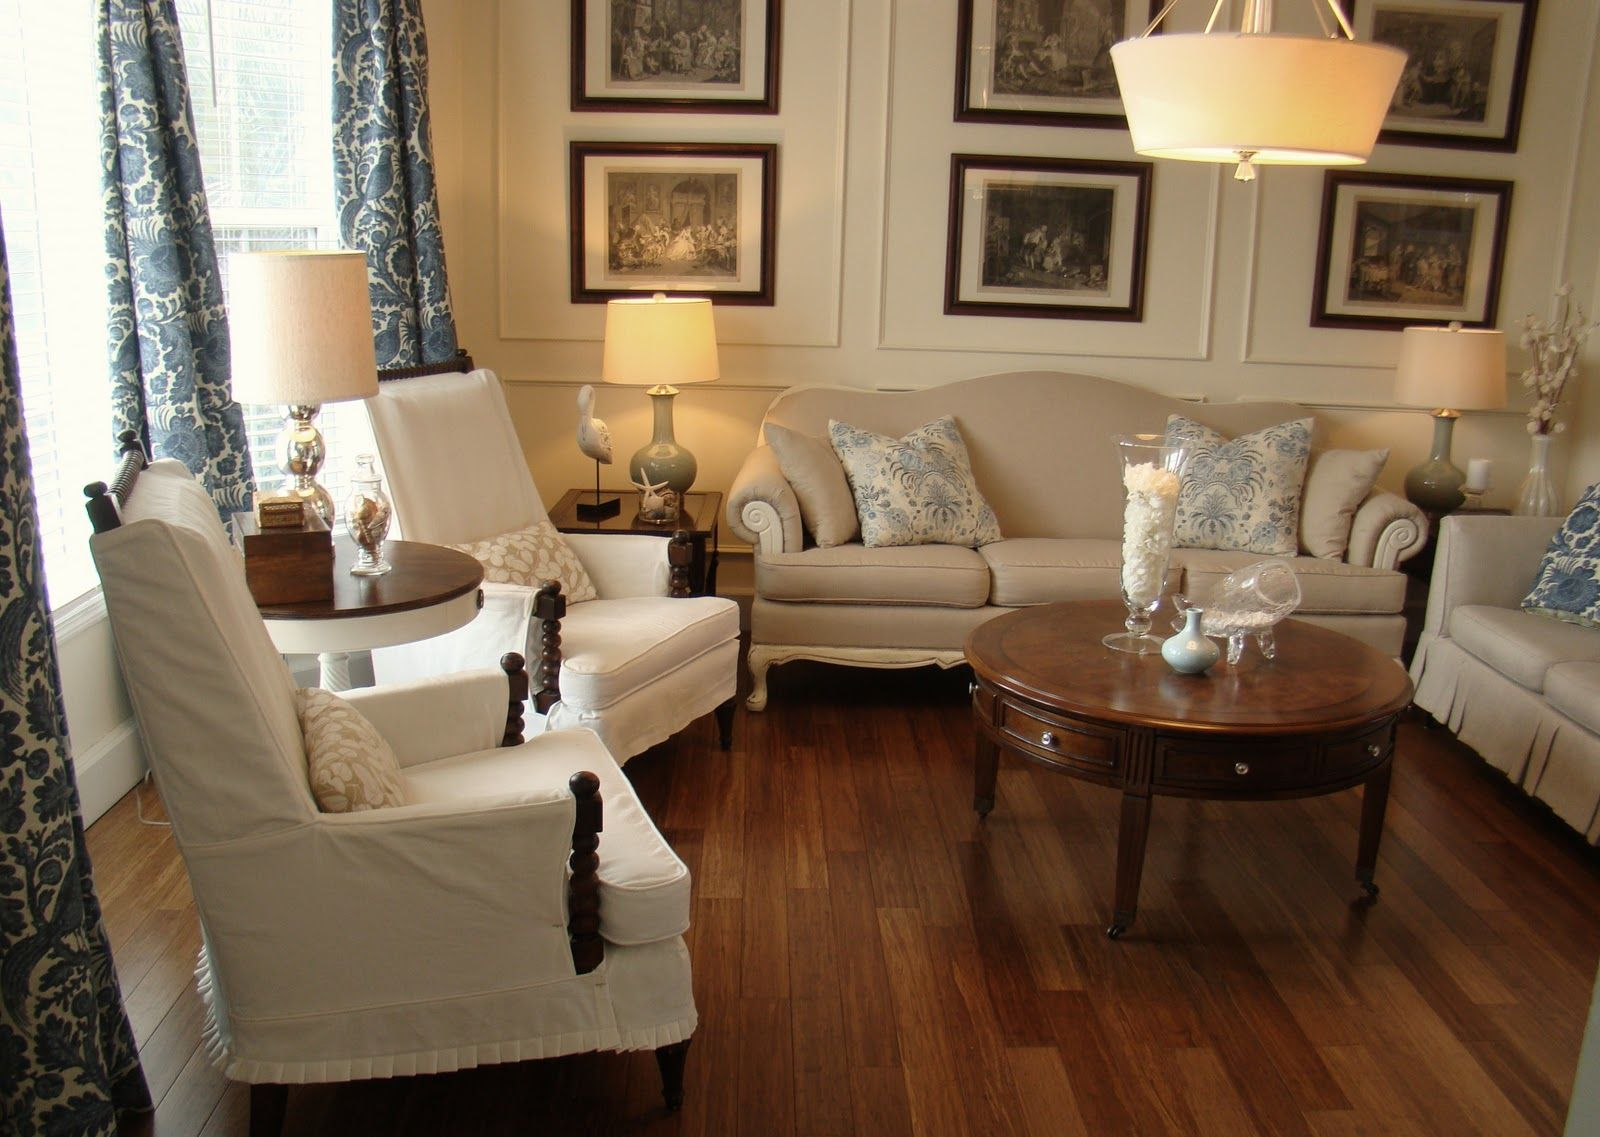 A Formal Living Room Again Using The Molding On The